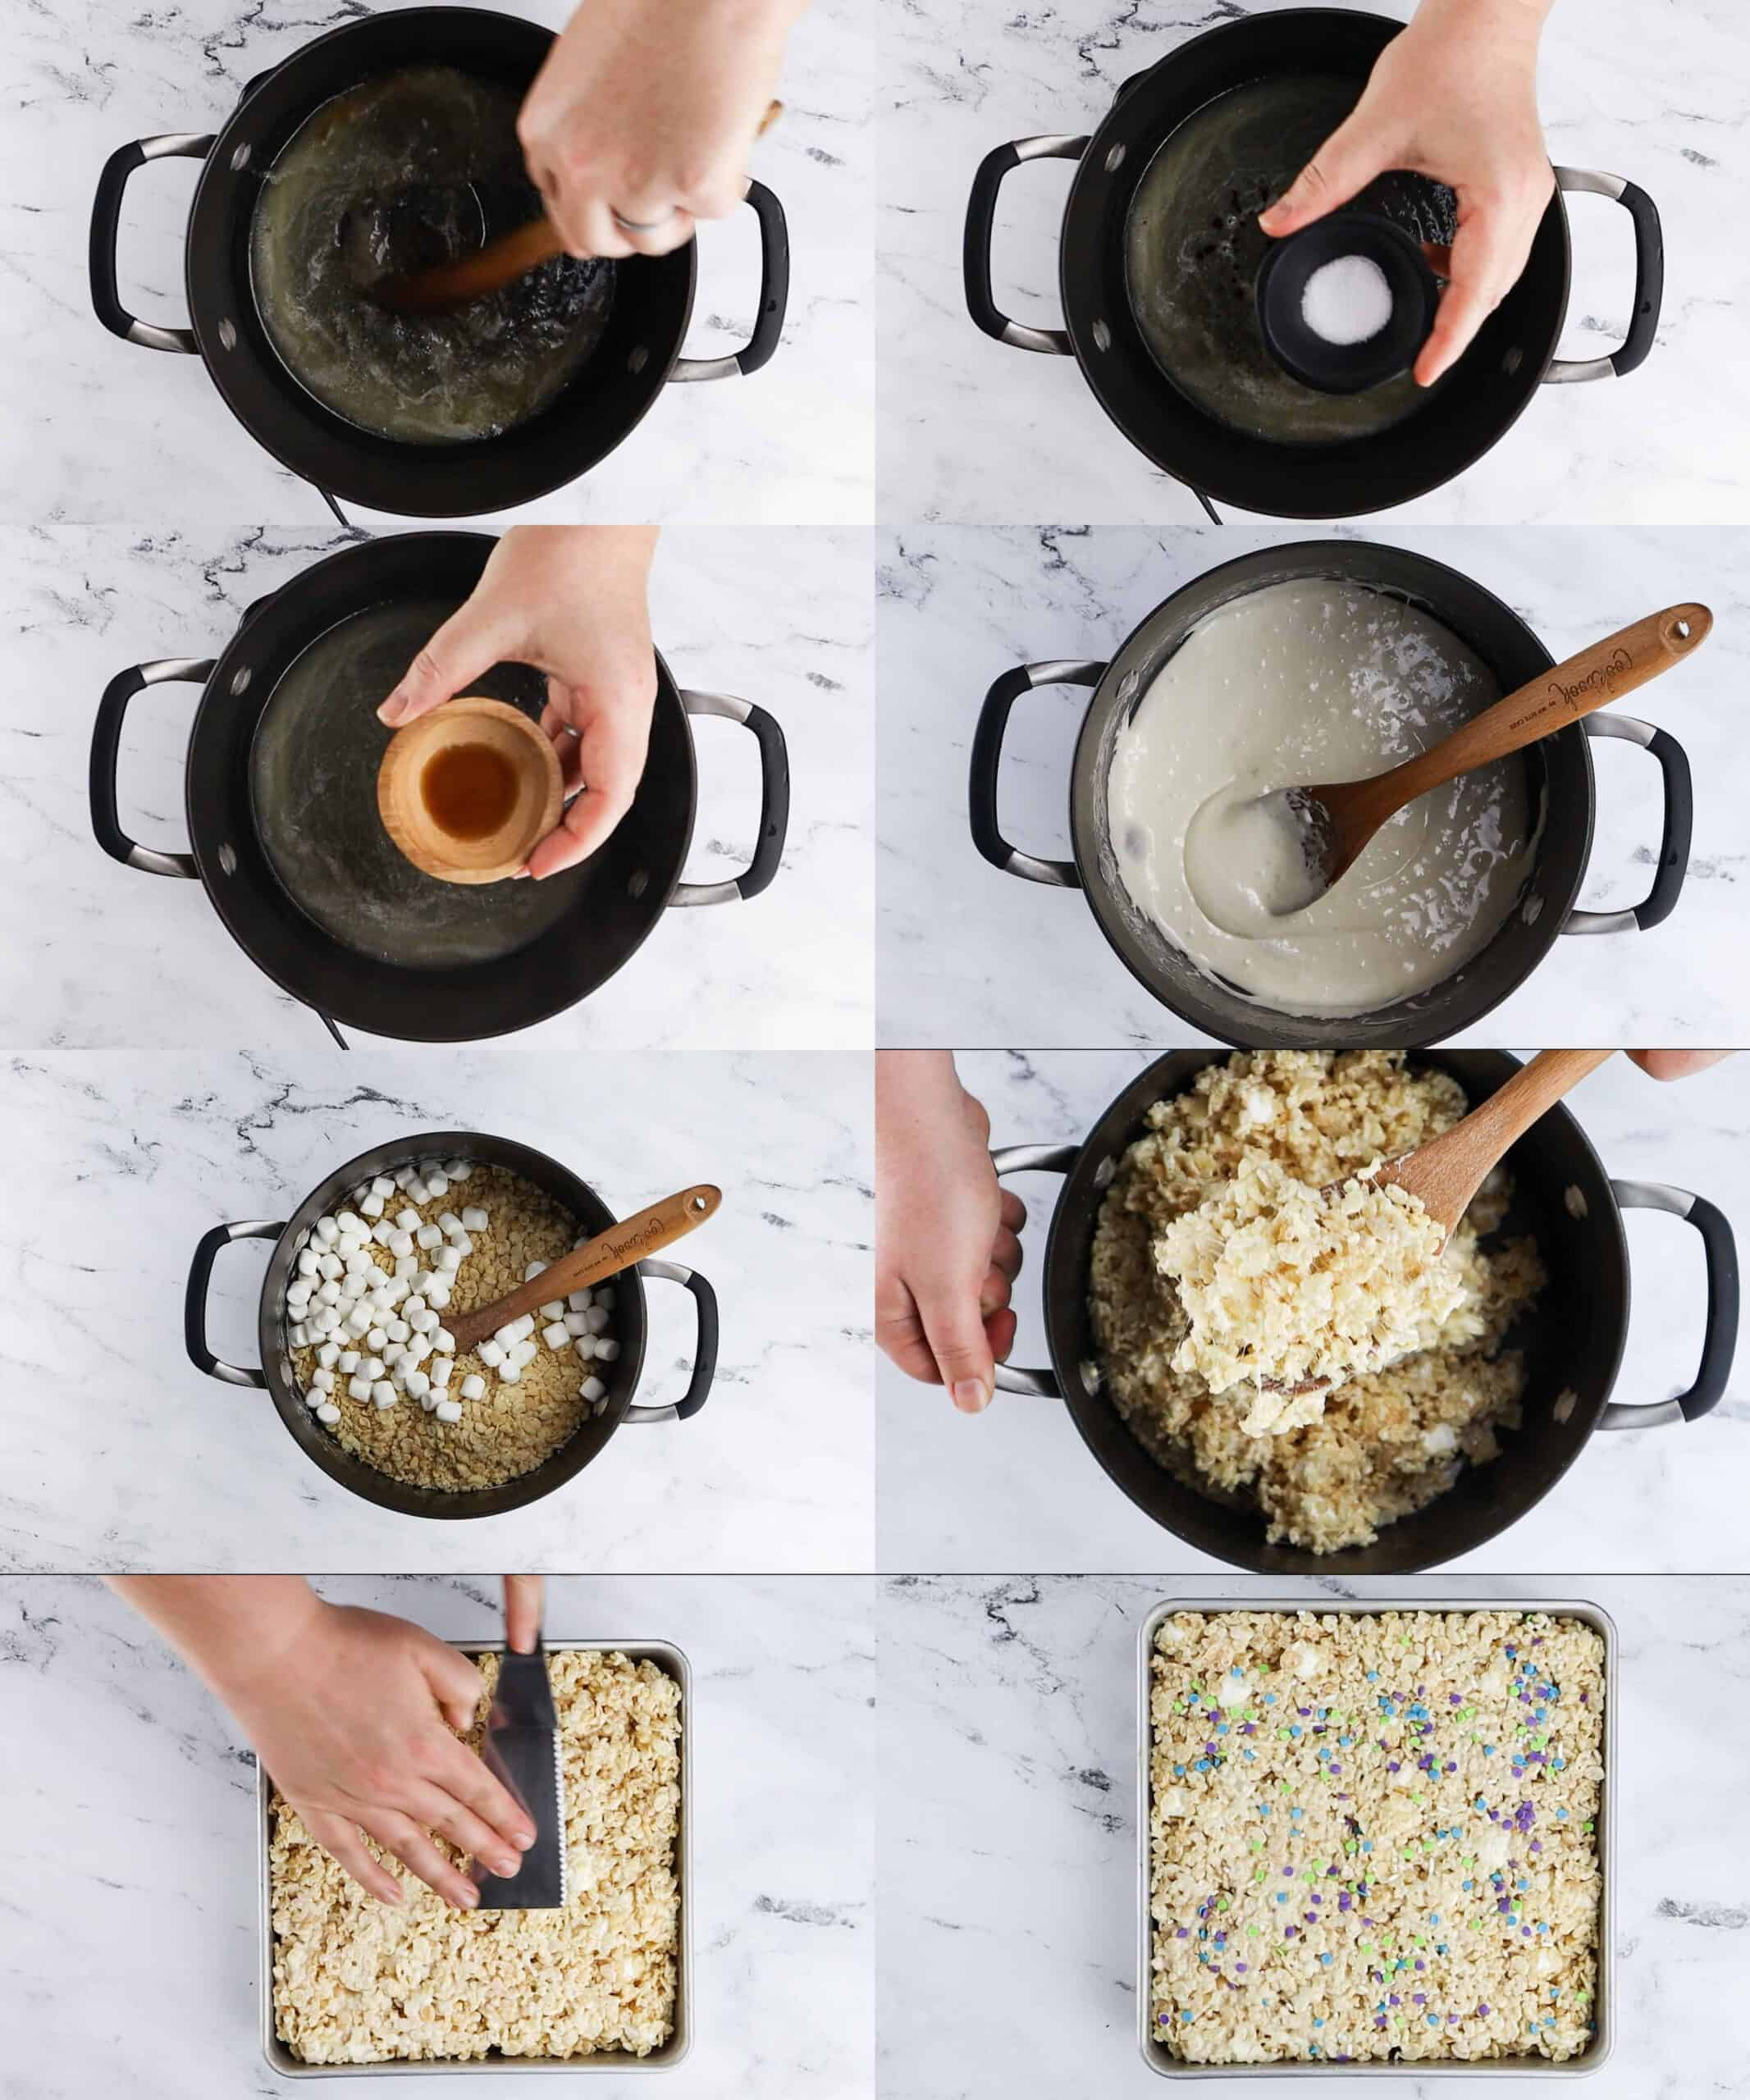 Process Shots of making the rice crispy treats- adding all ingredients, mixing and placing in baking dish